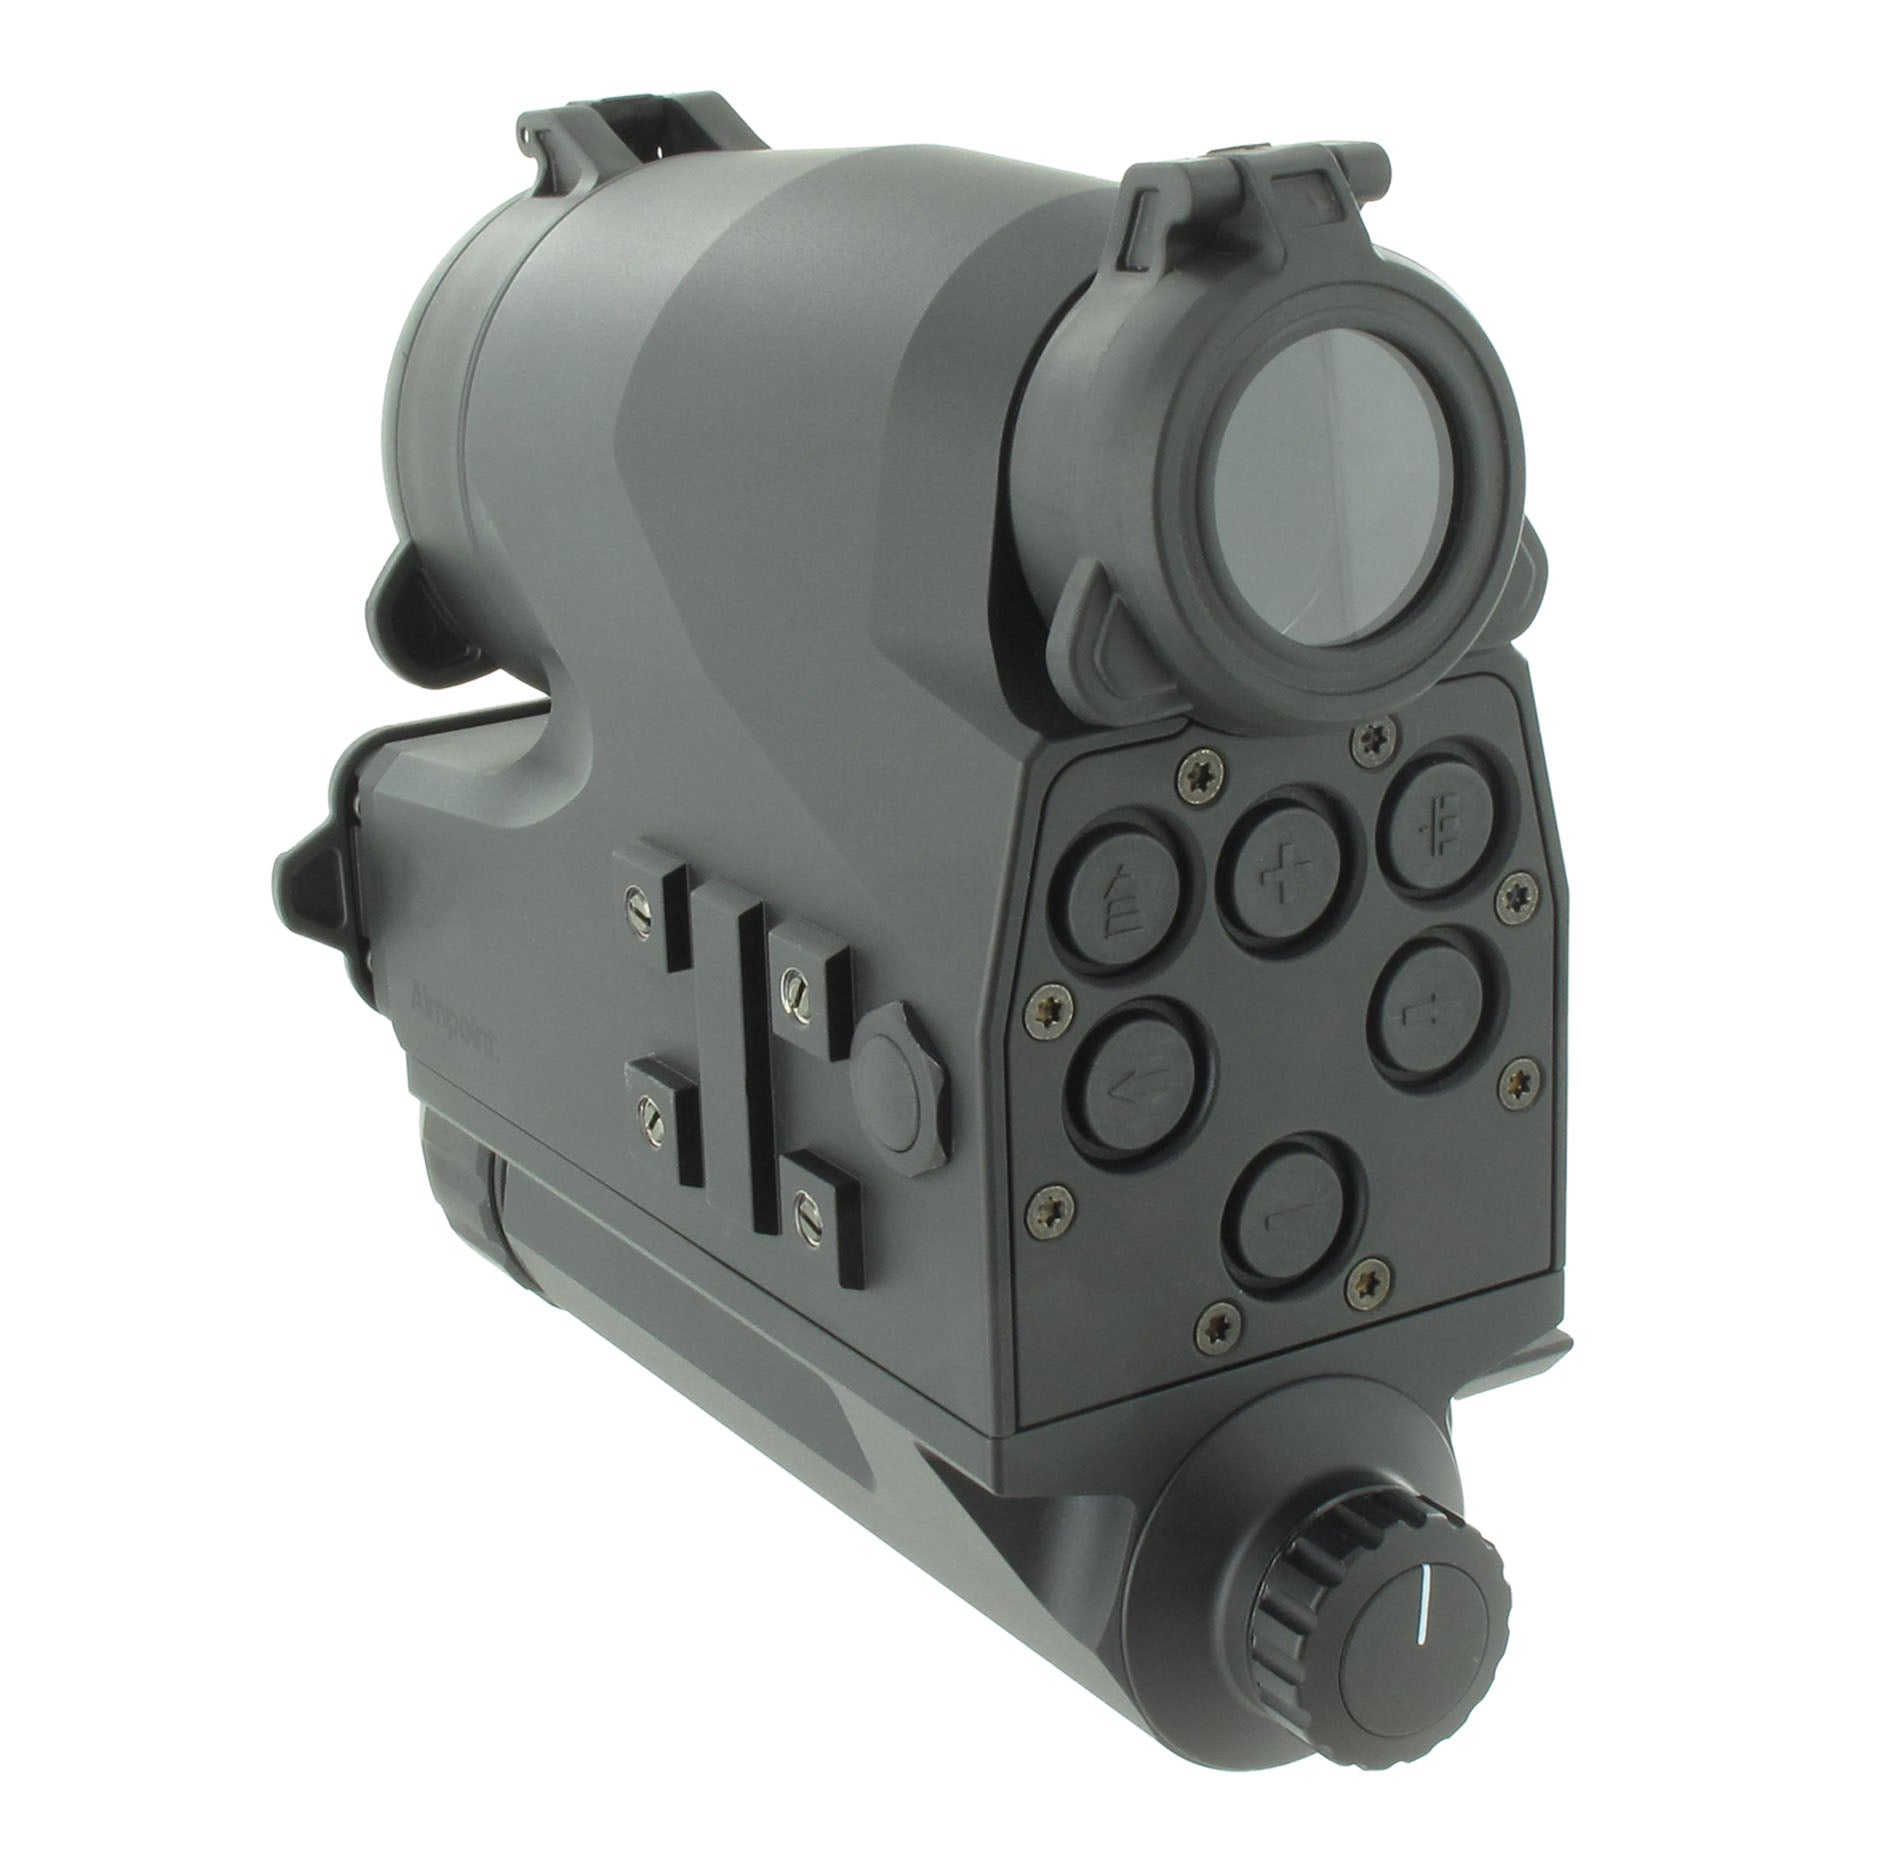 Aimpoint FCS12 FCS12 Sight - Security Pro USA